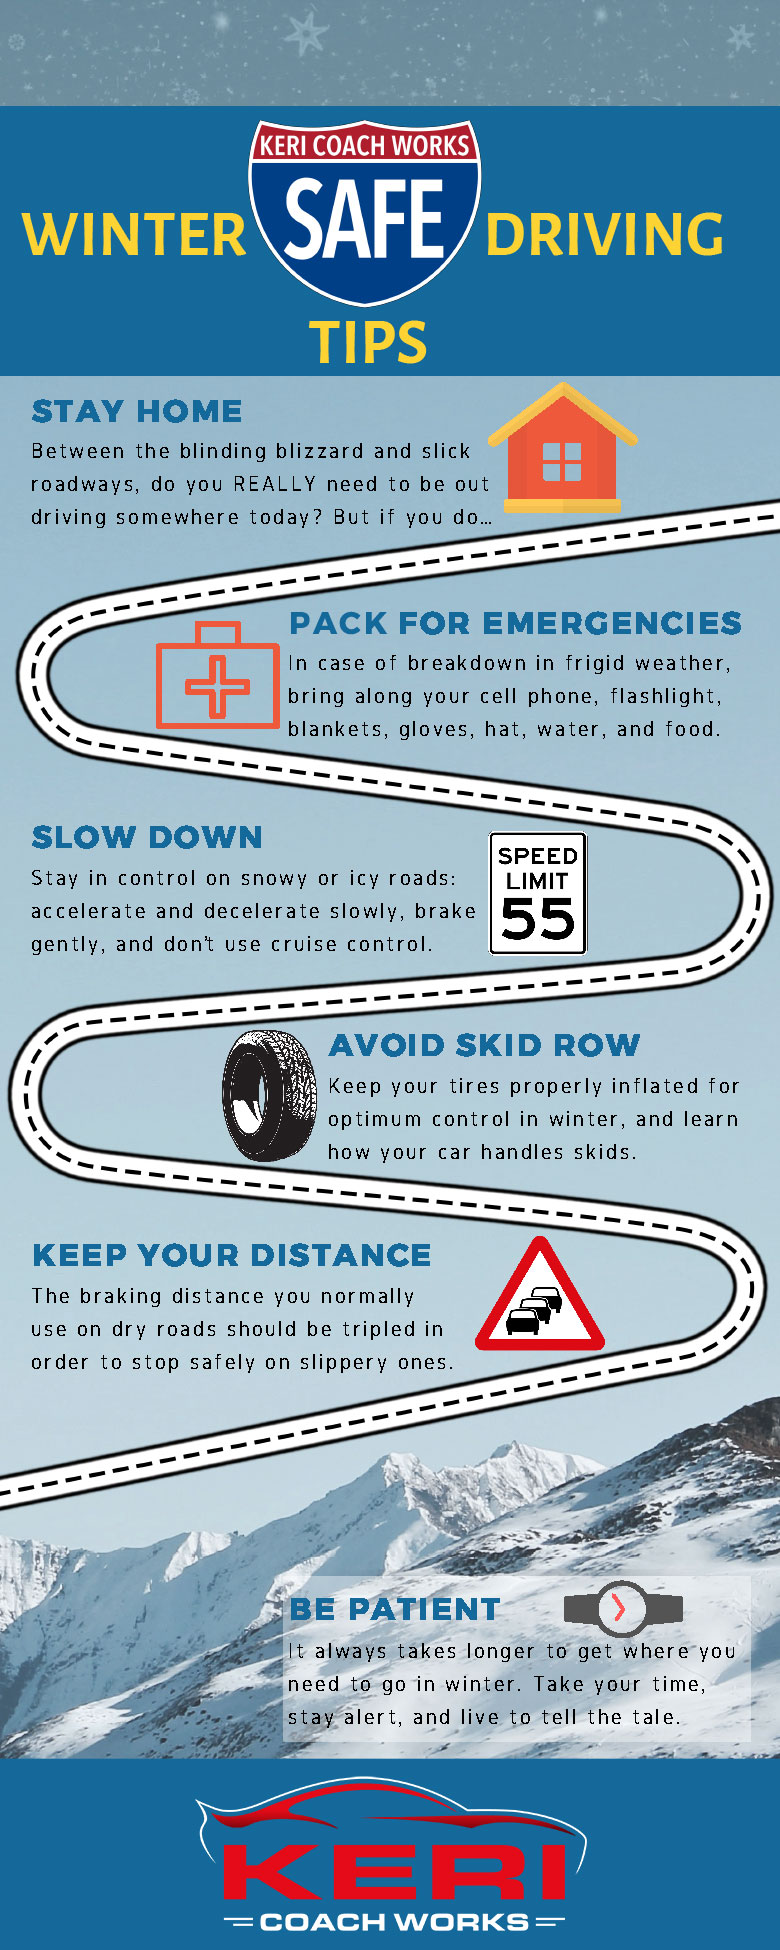 Winter Safe Driving Tips Infographic